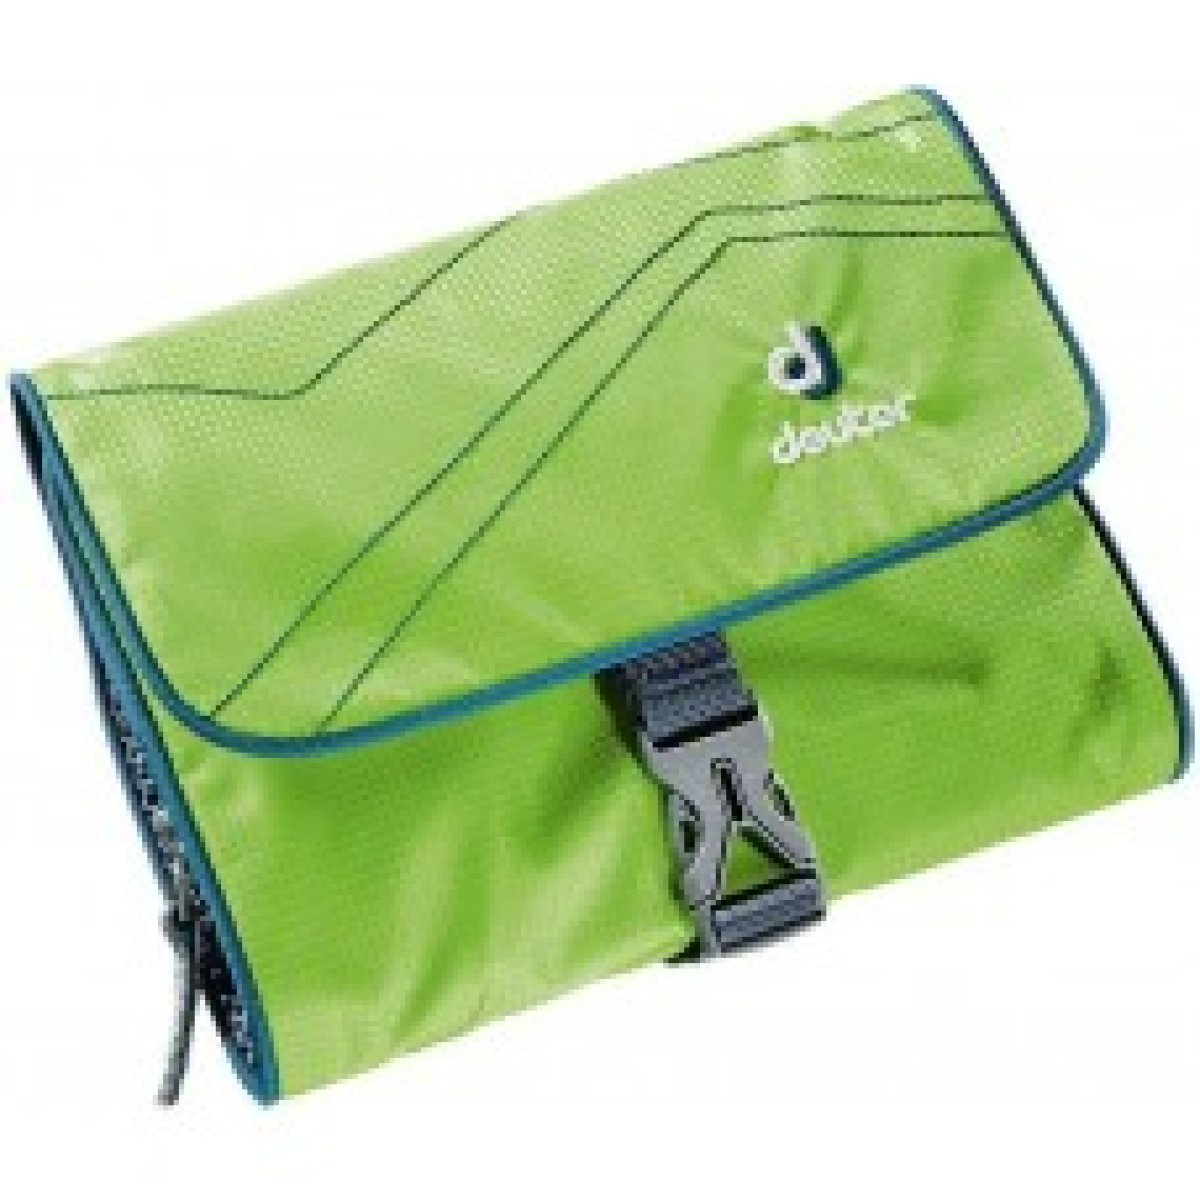 Сумка Deuter Wash Bag I цвет 2311 kiwi-arctic 7 39414 2311